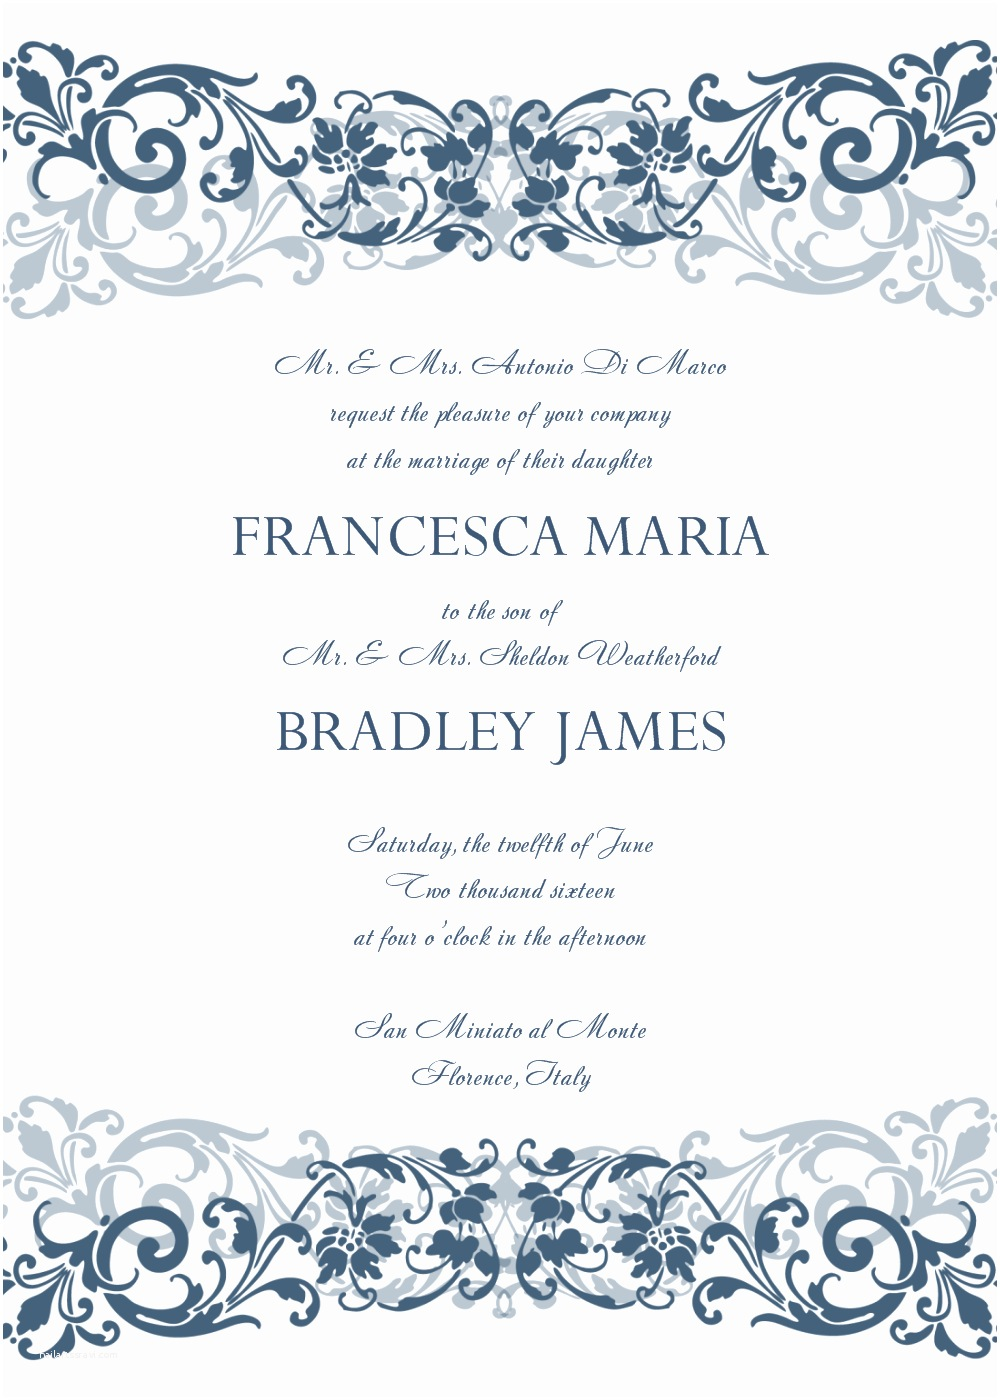 Impressive Wedding Invitations 12 Impressive Template for Wedding Invitations with Unique